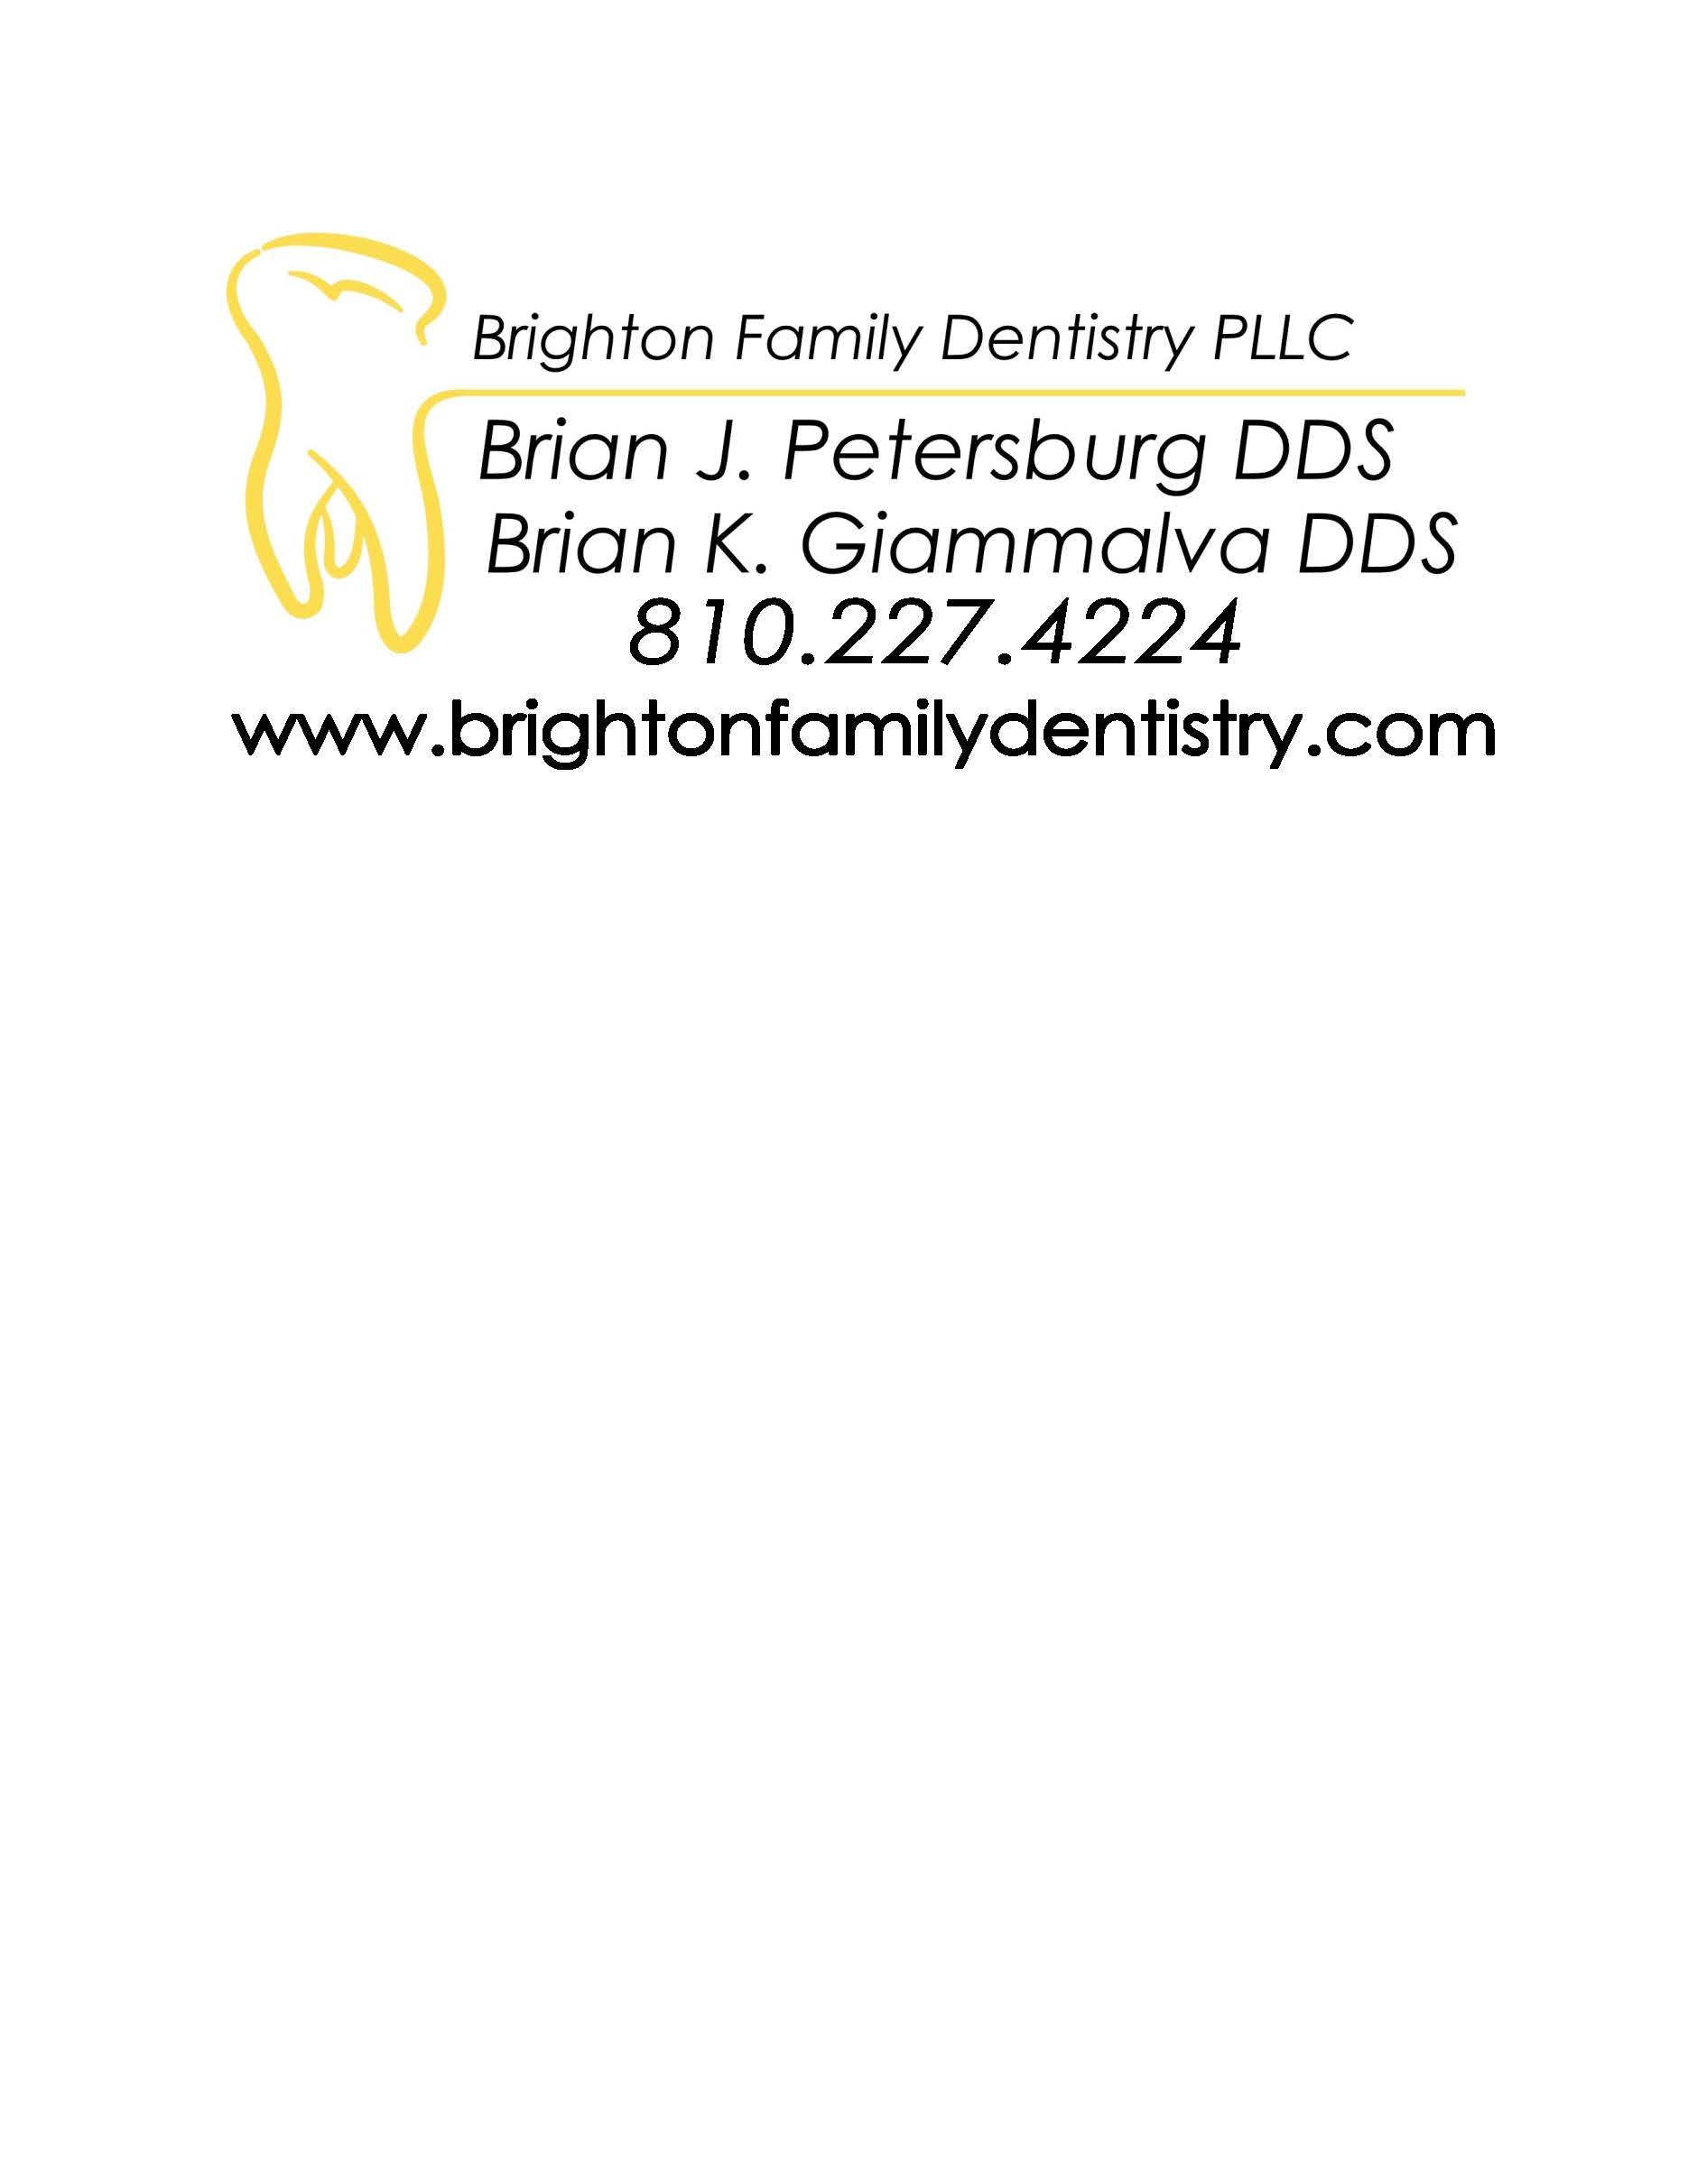 Beverage Sponsor - Brighton Family Dentistry